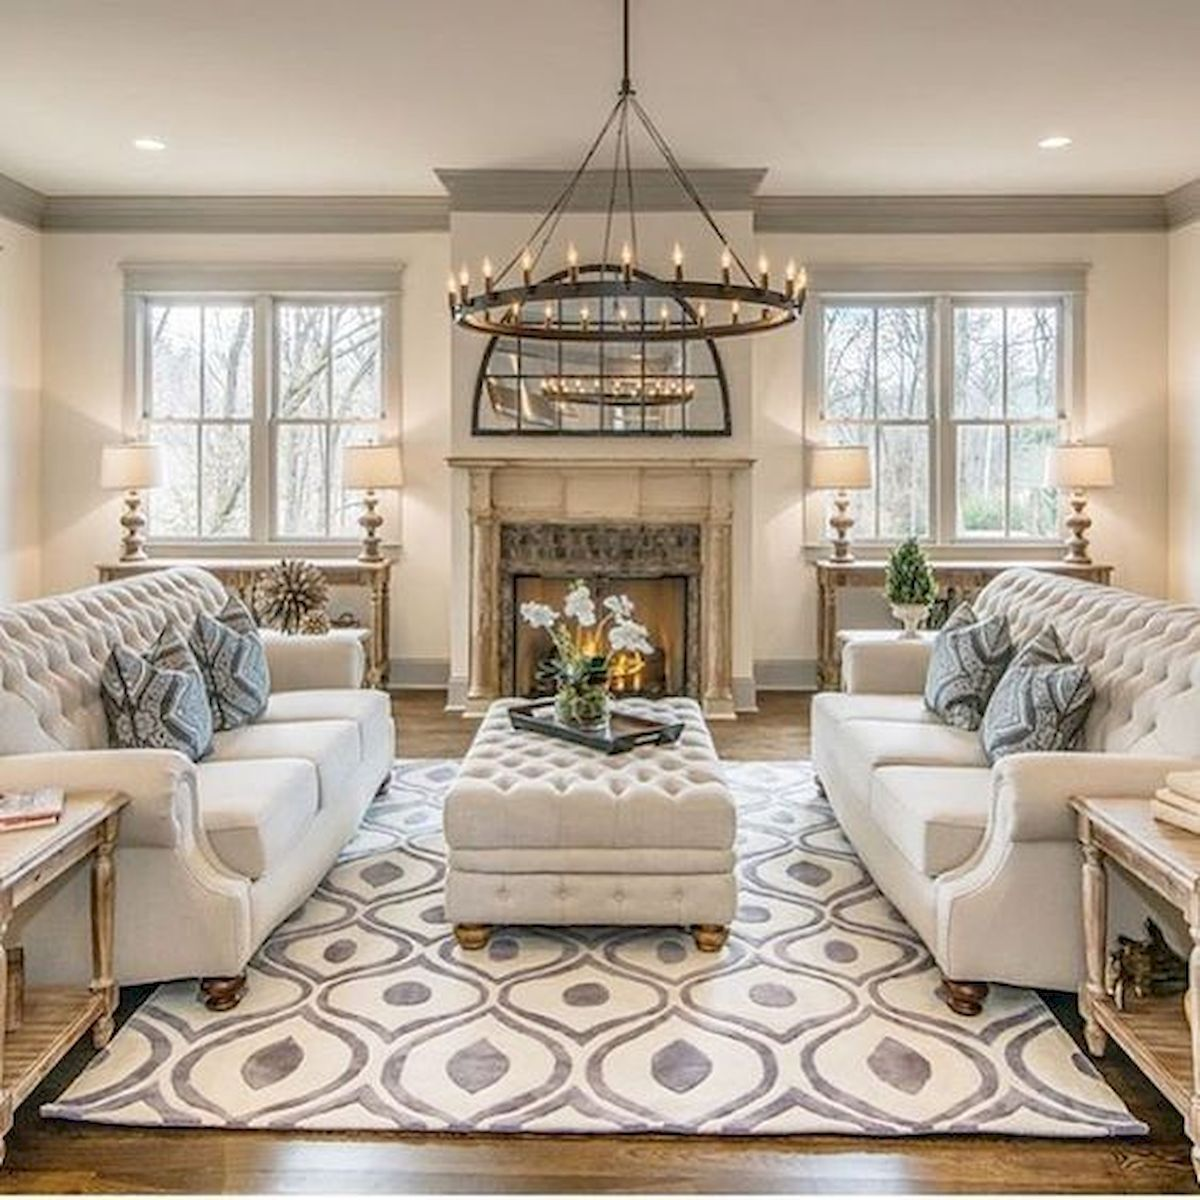 30 Elegant Farmhouse Living Room Decor Ideas